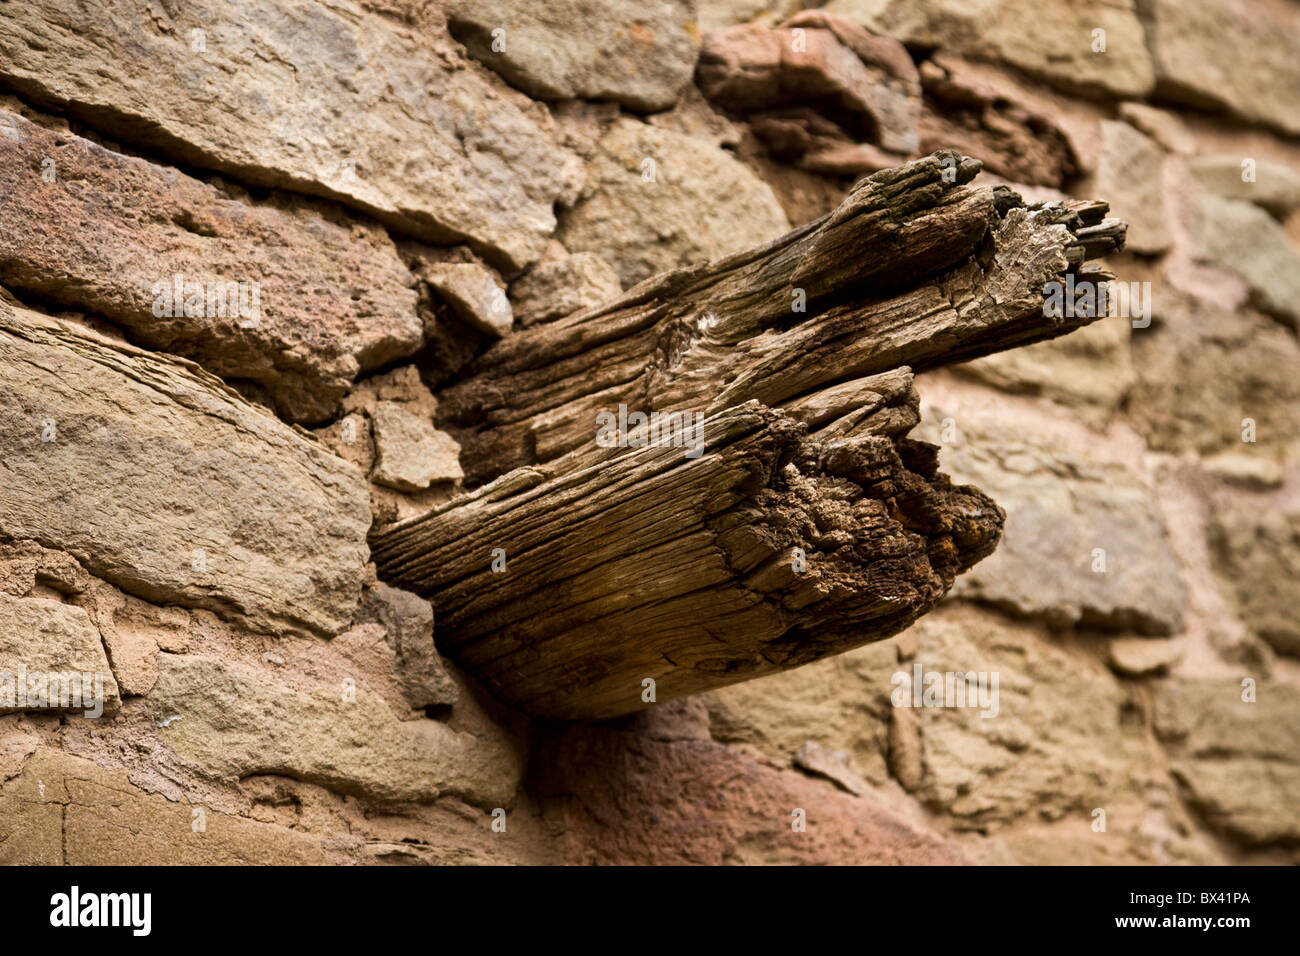 Wooden beam protruding through the walls of the Ancestral Puebloan ruins at Aztec Ruins National Monument, New Mexico, - Stock Image